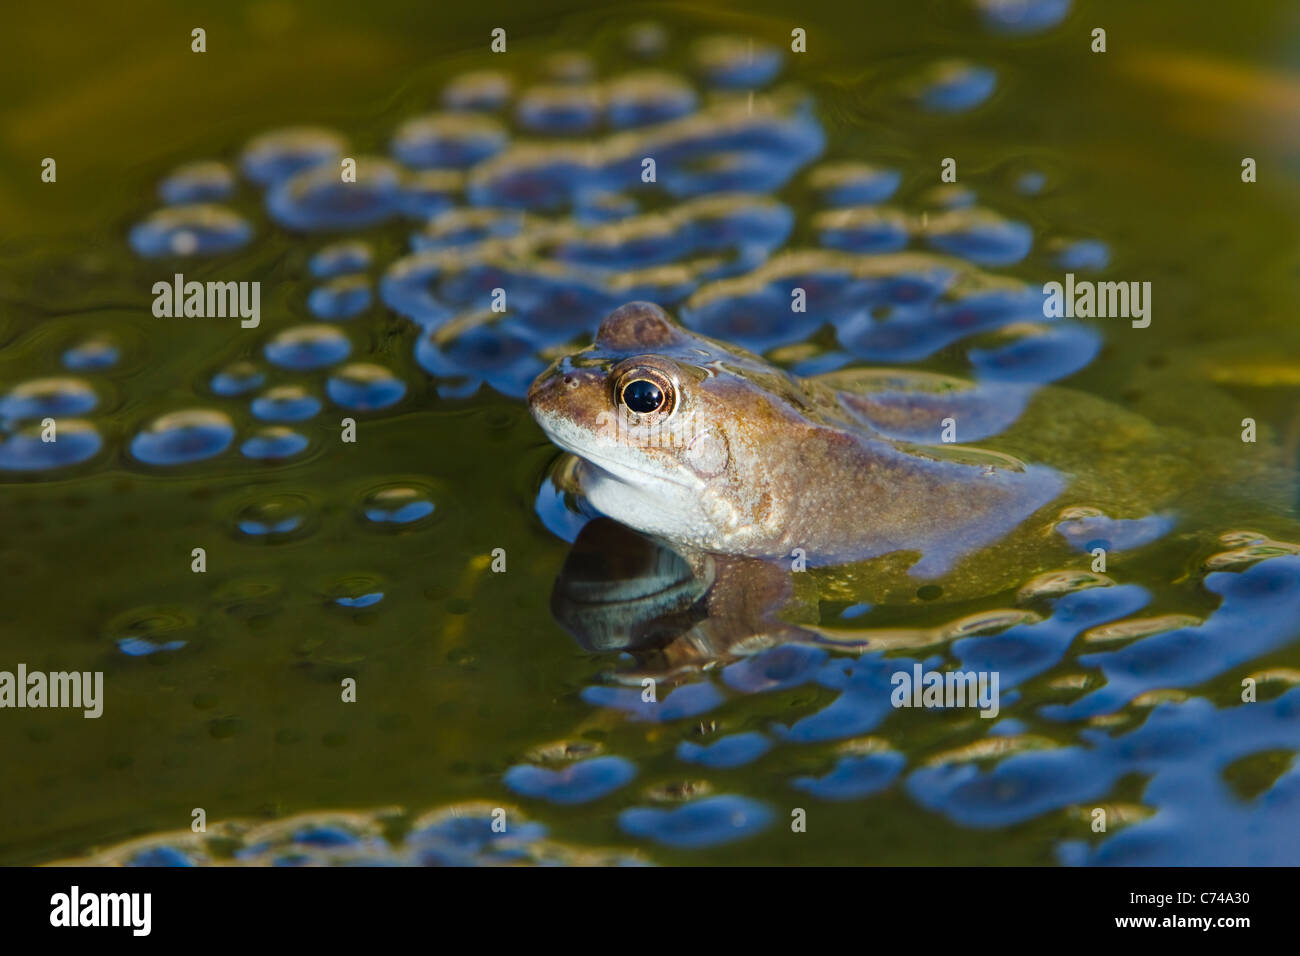 Common Frog - with frogspawn in pond Rana temporaria Essex, UK RE000230 - Stock Image